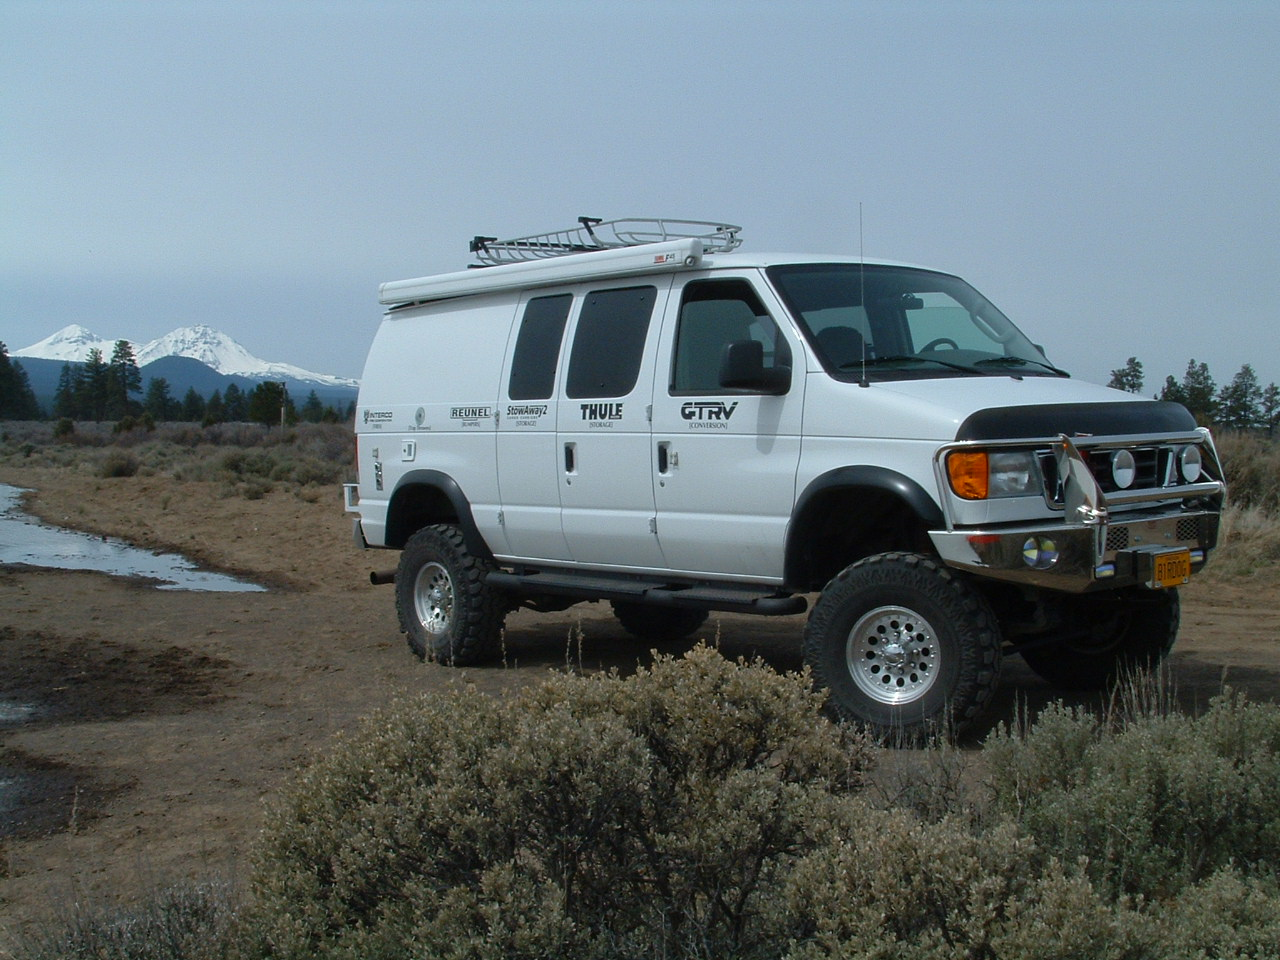 Watch for the rig on the Awesome Upland Road Trip 2.0